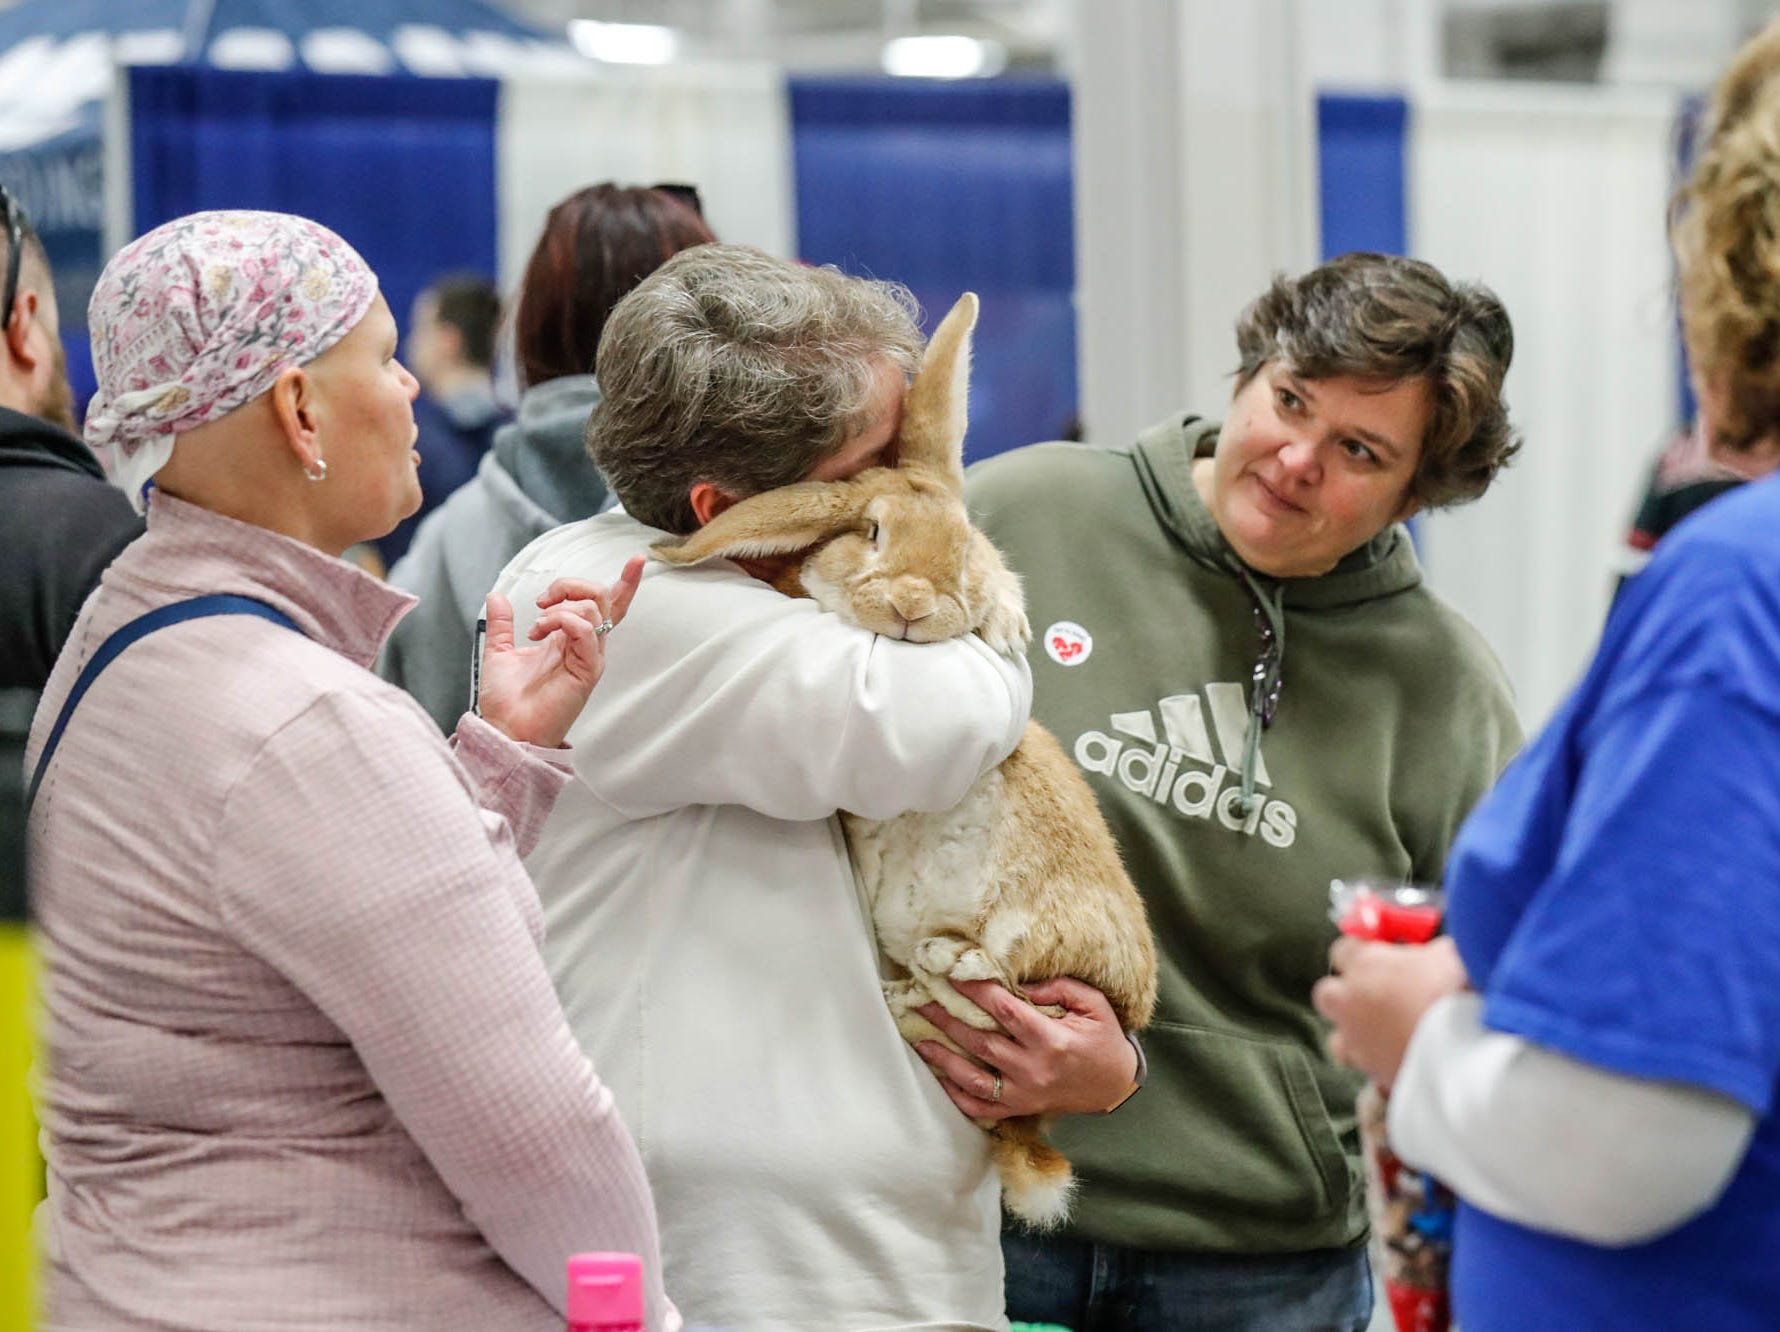 Jane, center, and Rebecca Zieleniuk, right, cuddle a flemish giant rabbit named Ernie at thew Boone County 4-H booth  during the Great Indy Pet Expo, held at the Indiana State Fairgrounds on Sat. Nov. 10, 2018.